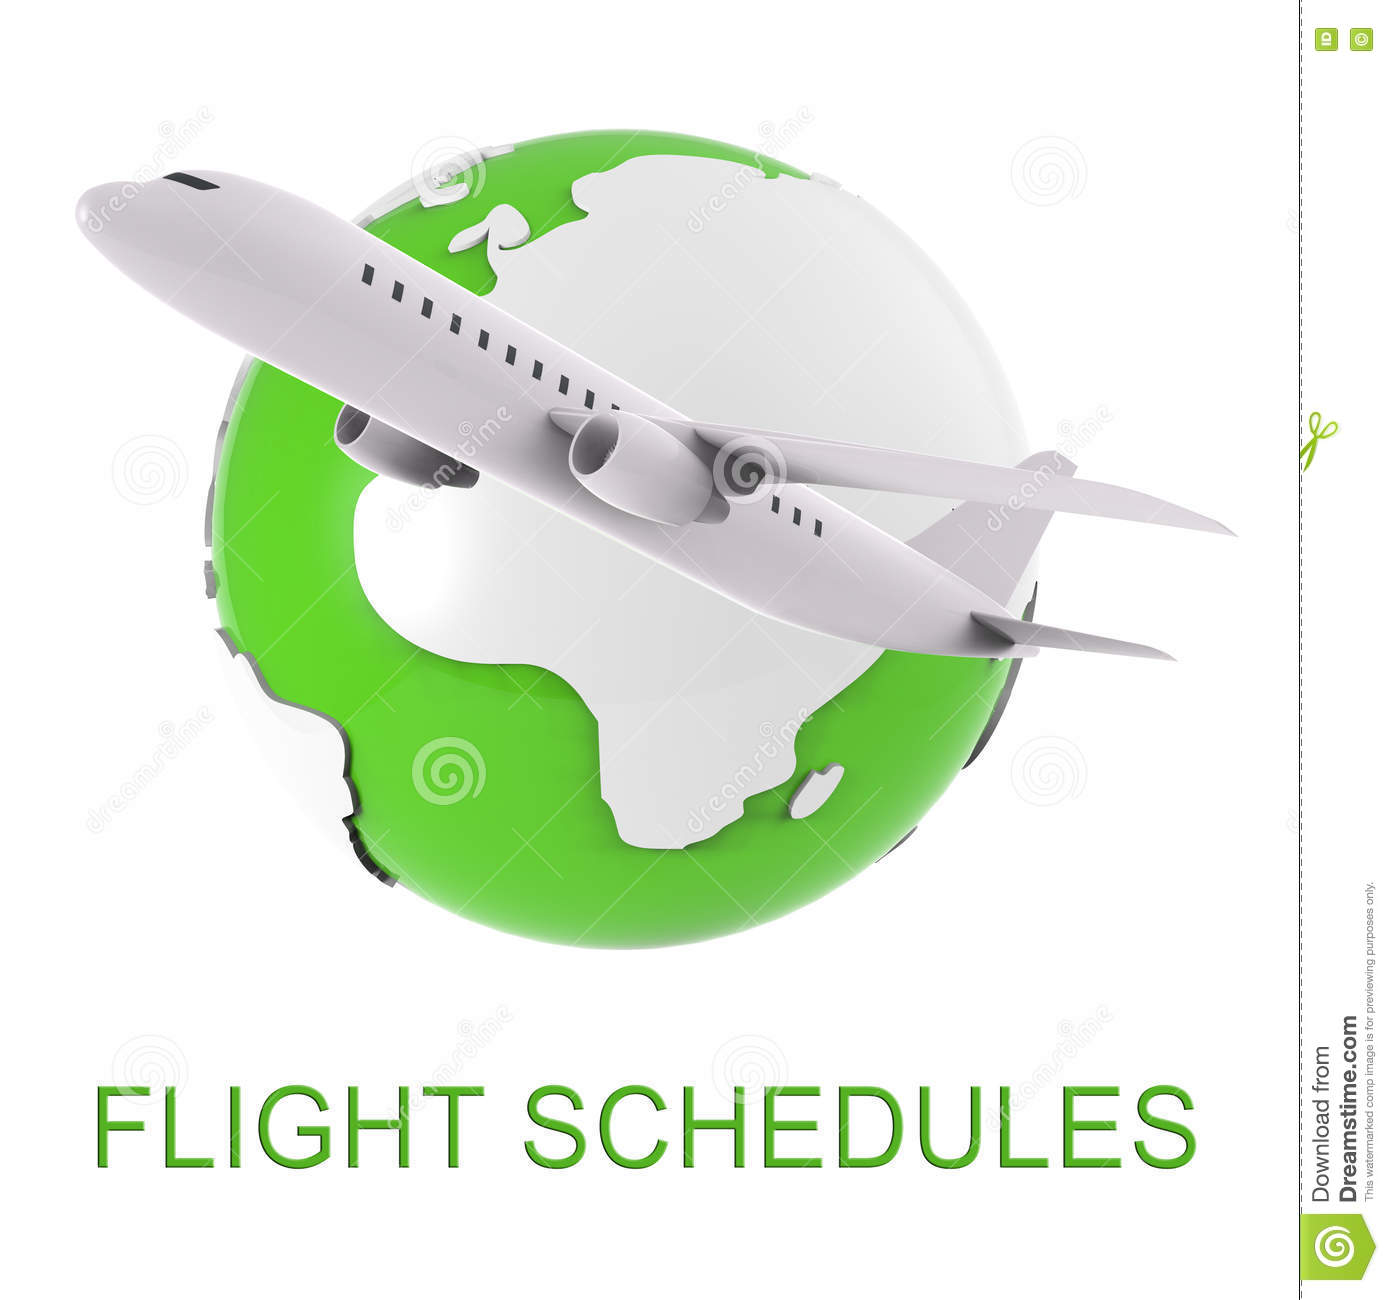 Flight Schedules Indicates Scheduled Airplane And Appointments 3d.